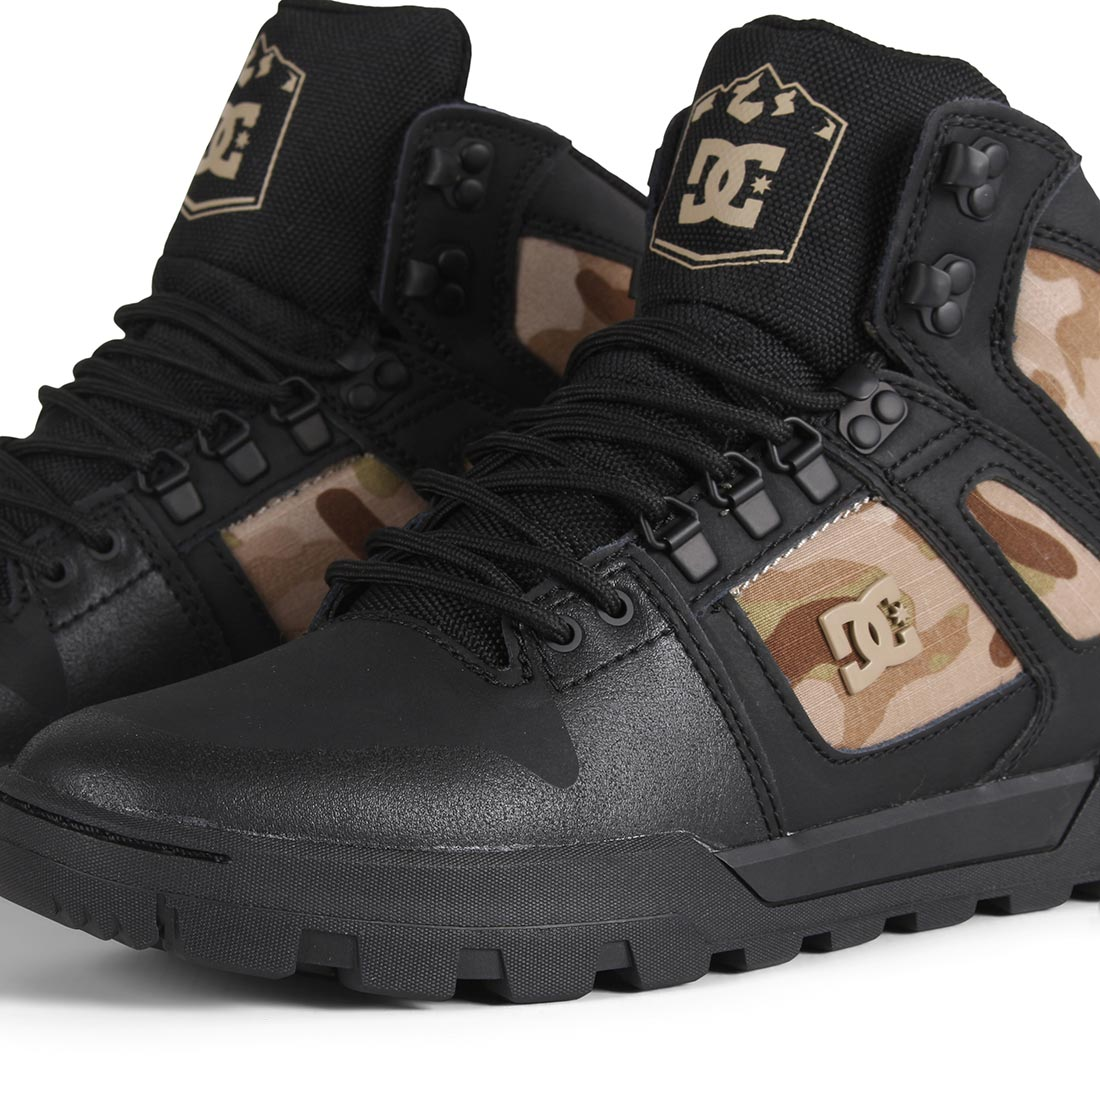 DC Shoes Pure High Top WR Boot - Black / Camo